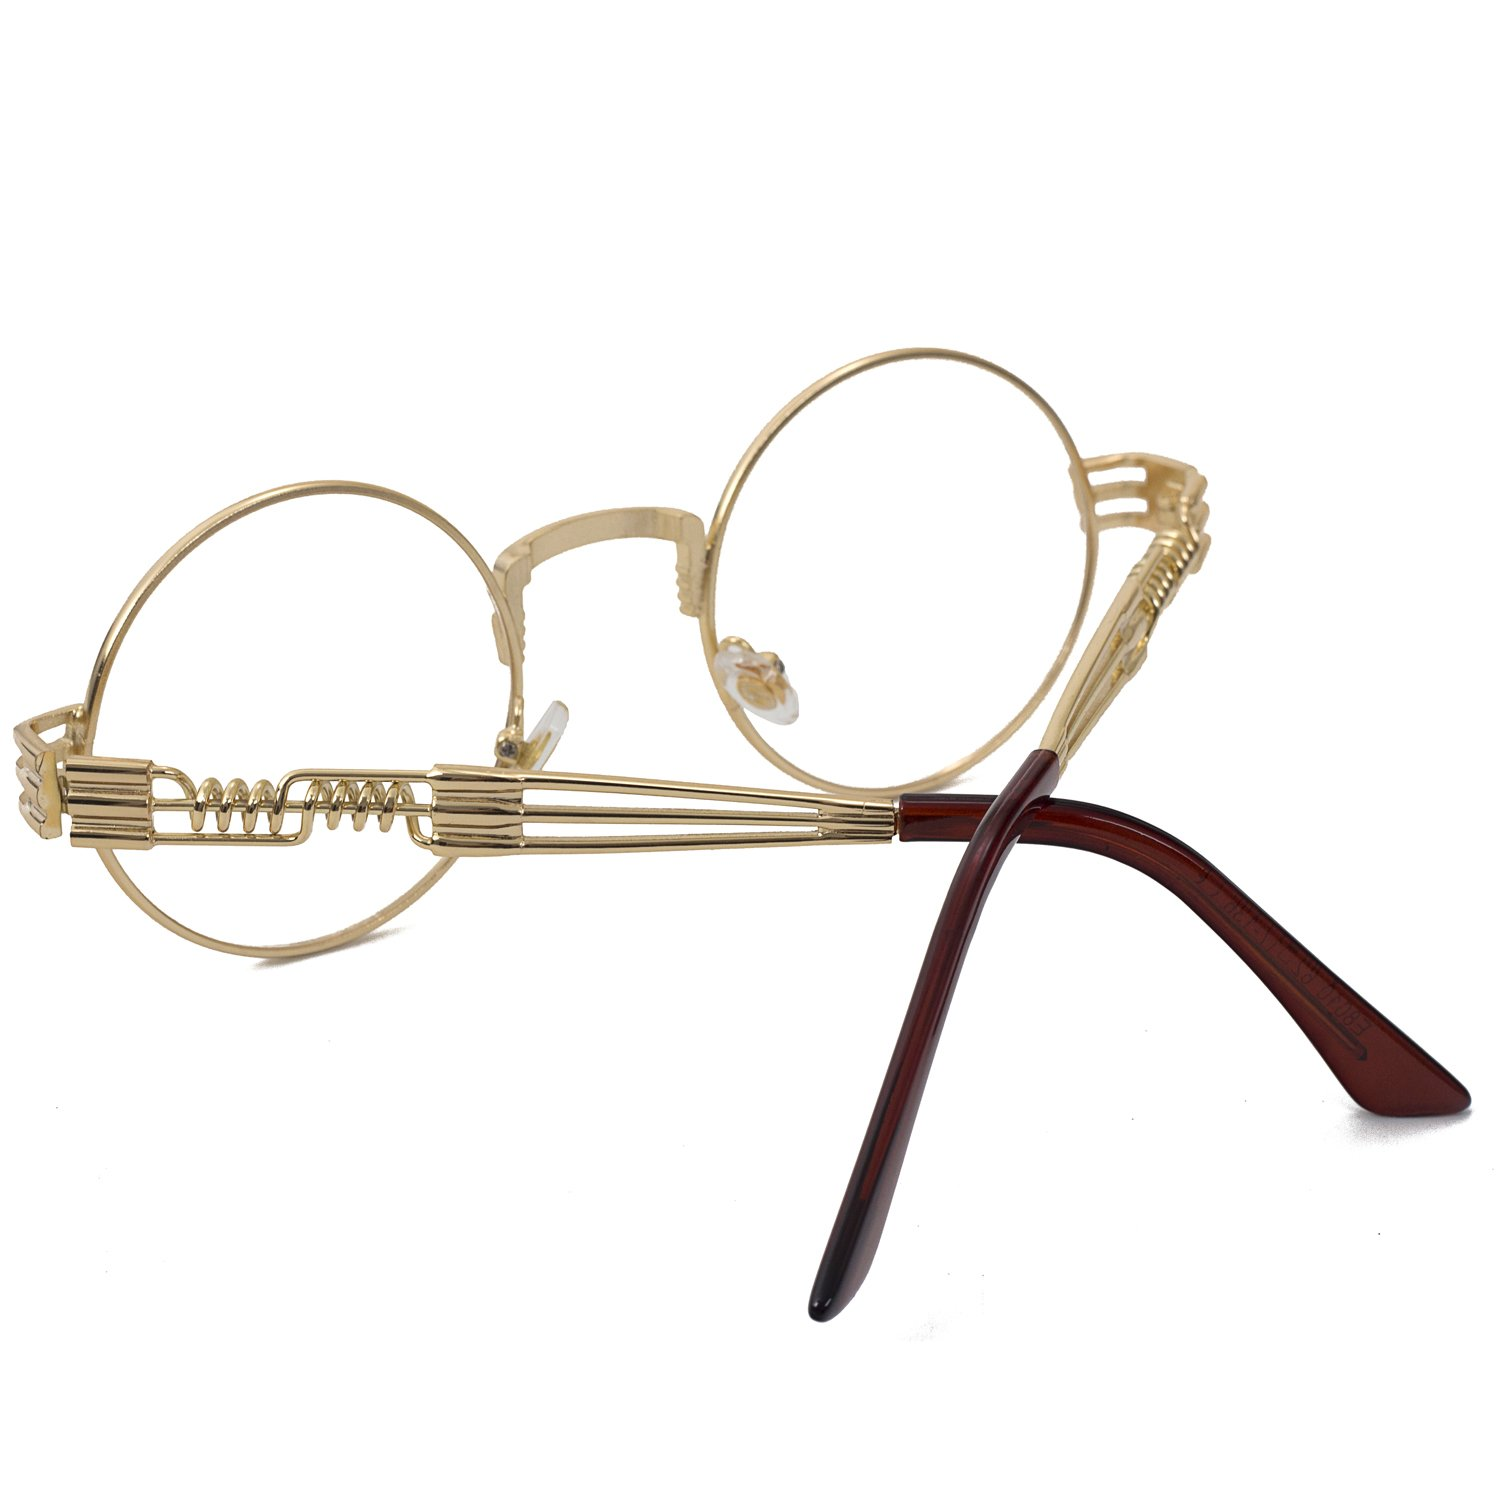 Pro Acme John Lennon Metal Spring Frame Round Steampunk Clear Lens Glasses (Gold Frame/Clear Lens) by Pro Acme (Image #4)